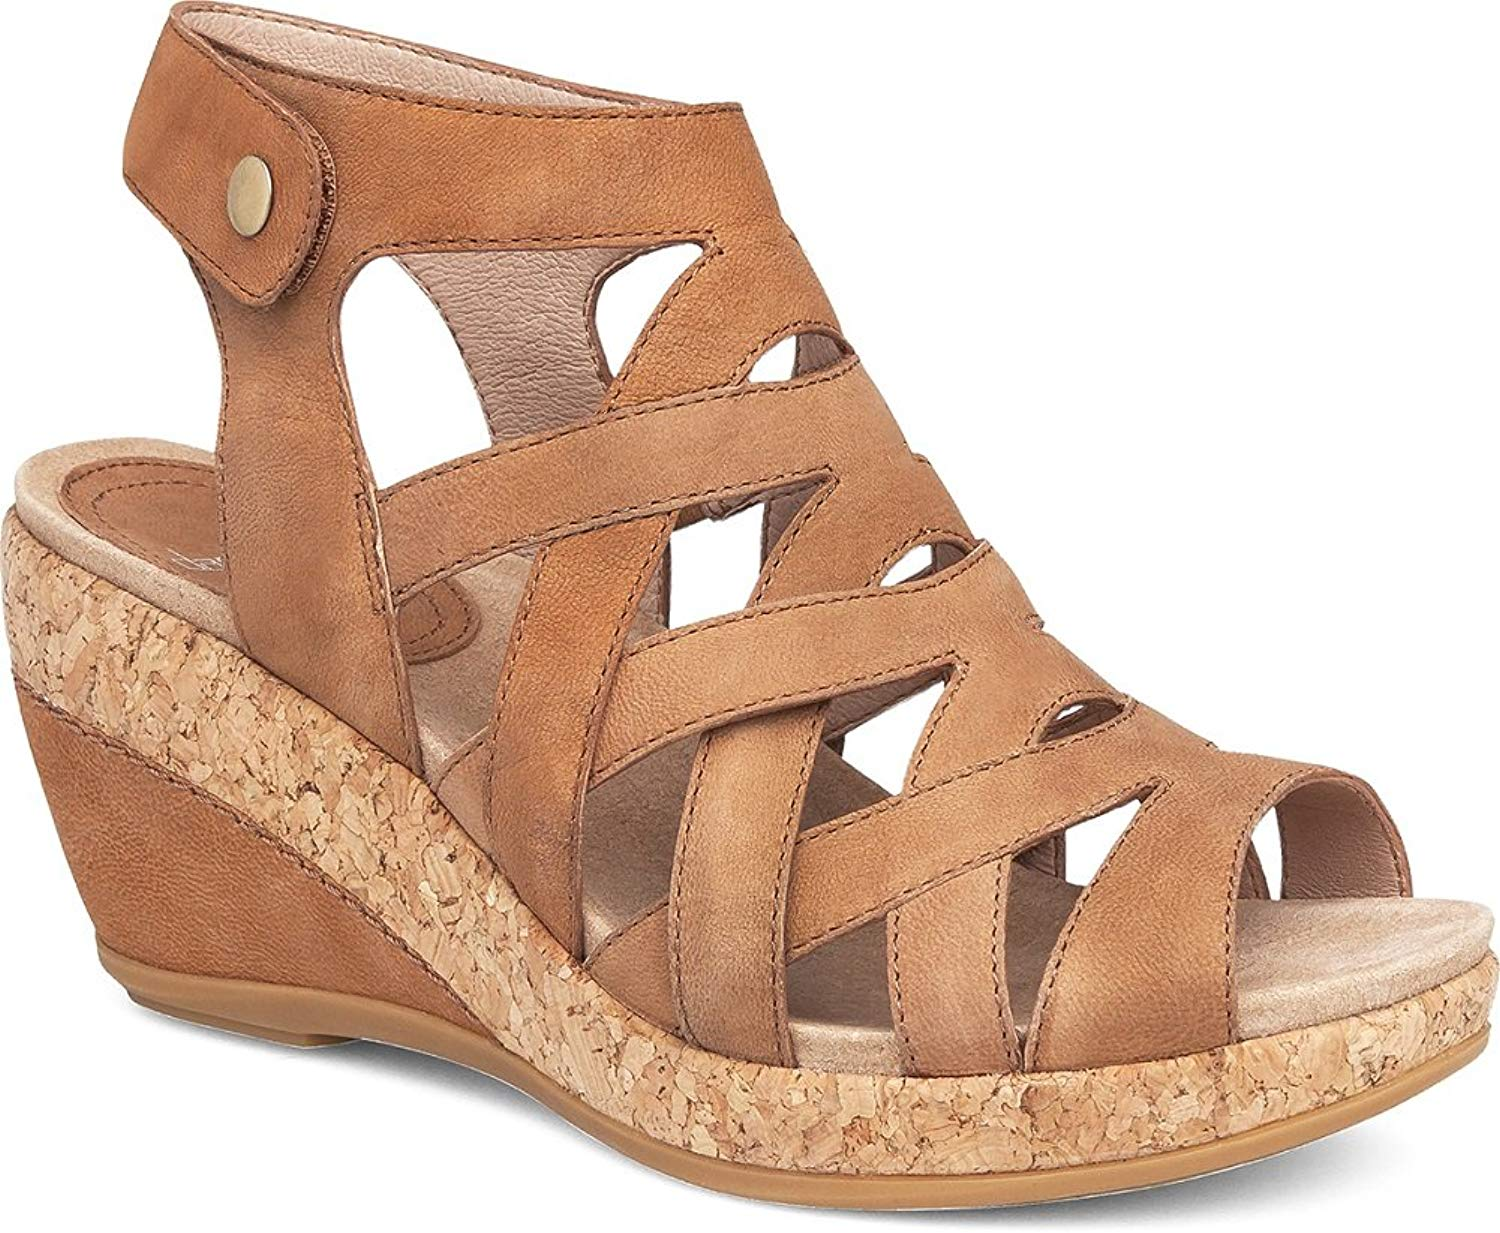 Dansko nuovo Wouomo Cecily Wedge Seal Camel Milled Nubuck 41